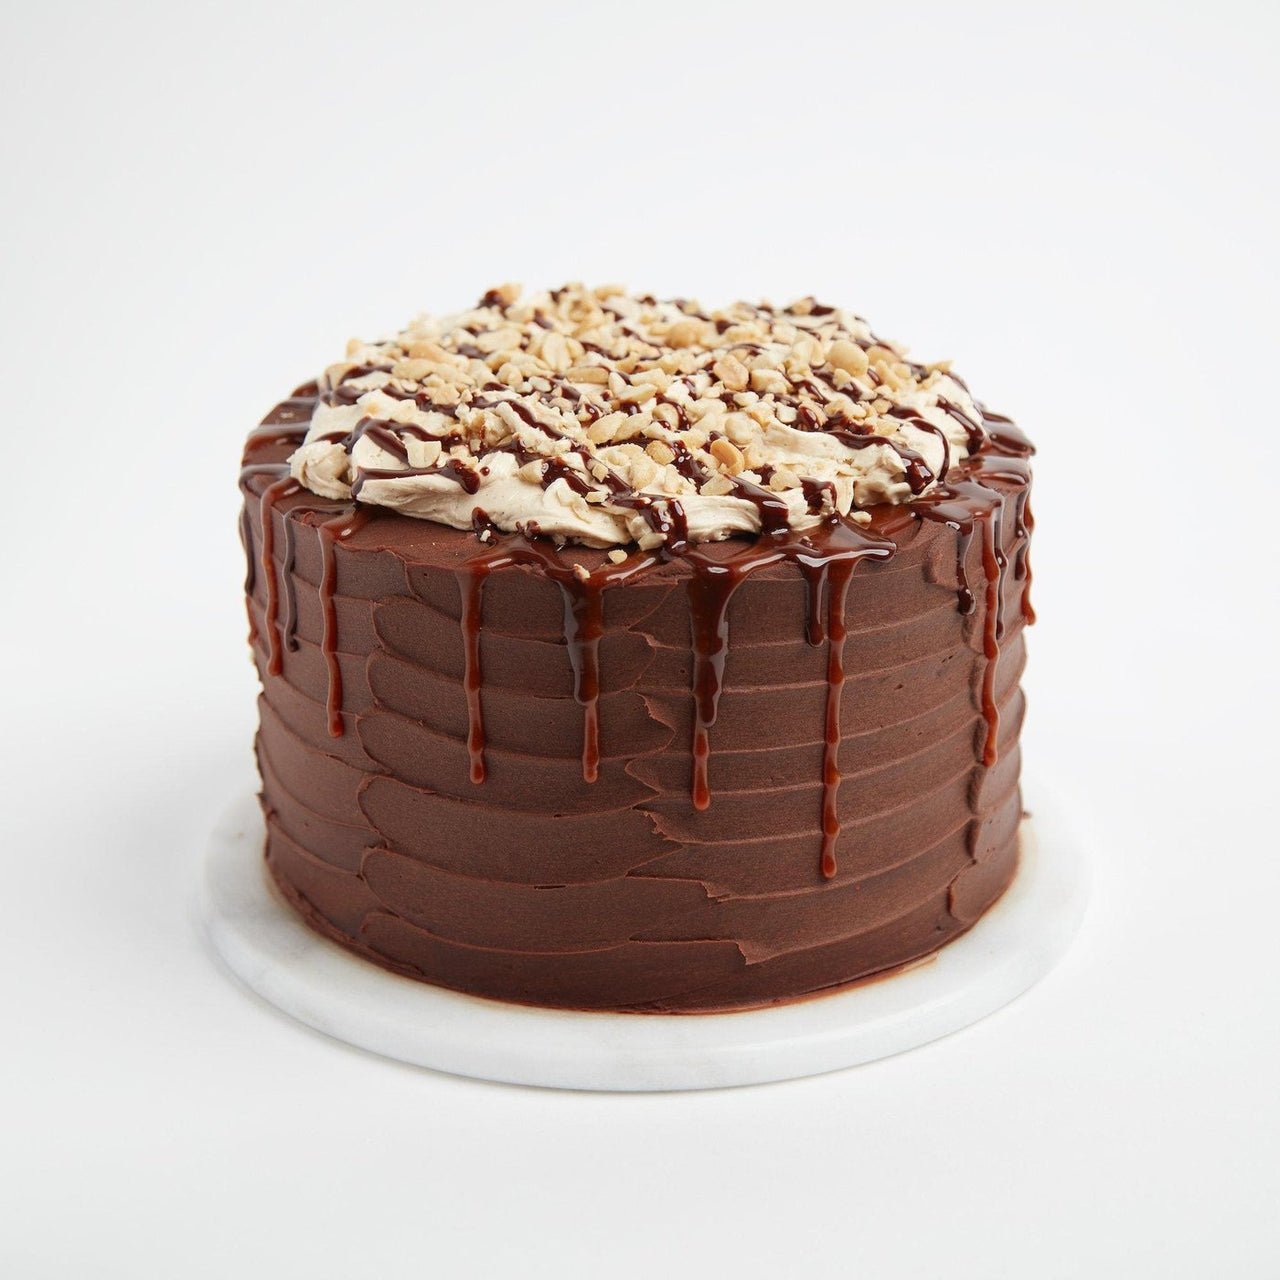 Snickers Cake by Crumbs & Doilies